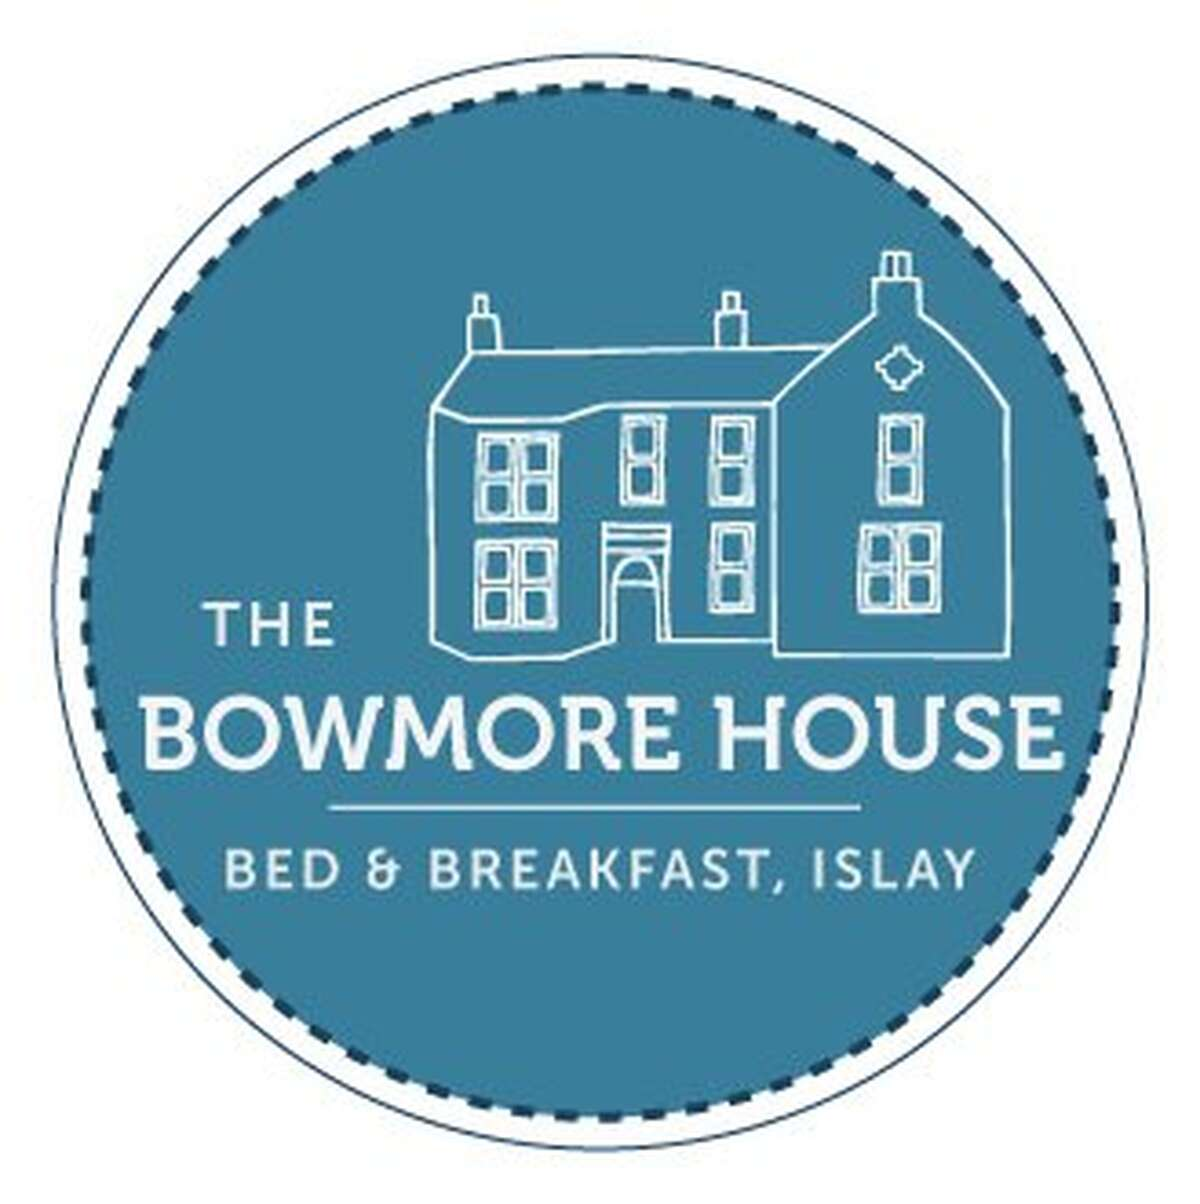 Bed And Breakfast Islay Our Gallery The Bowmore House Licensed Bed And Breakfast And